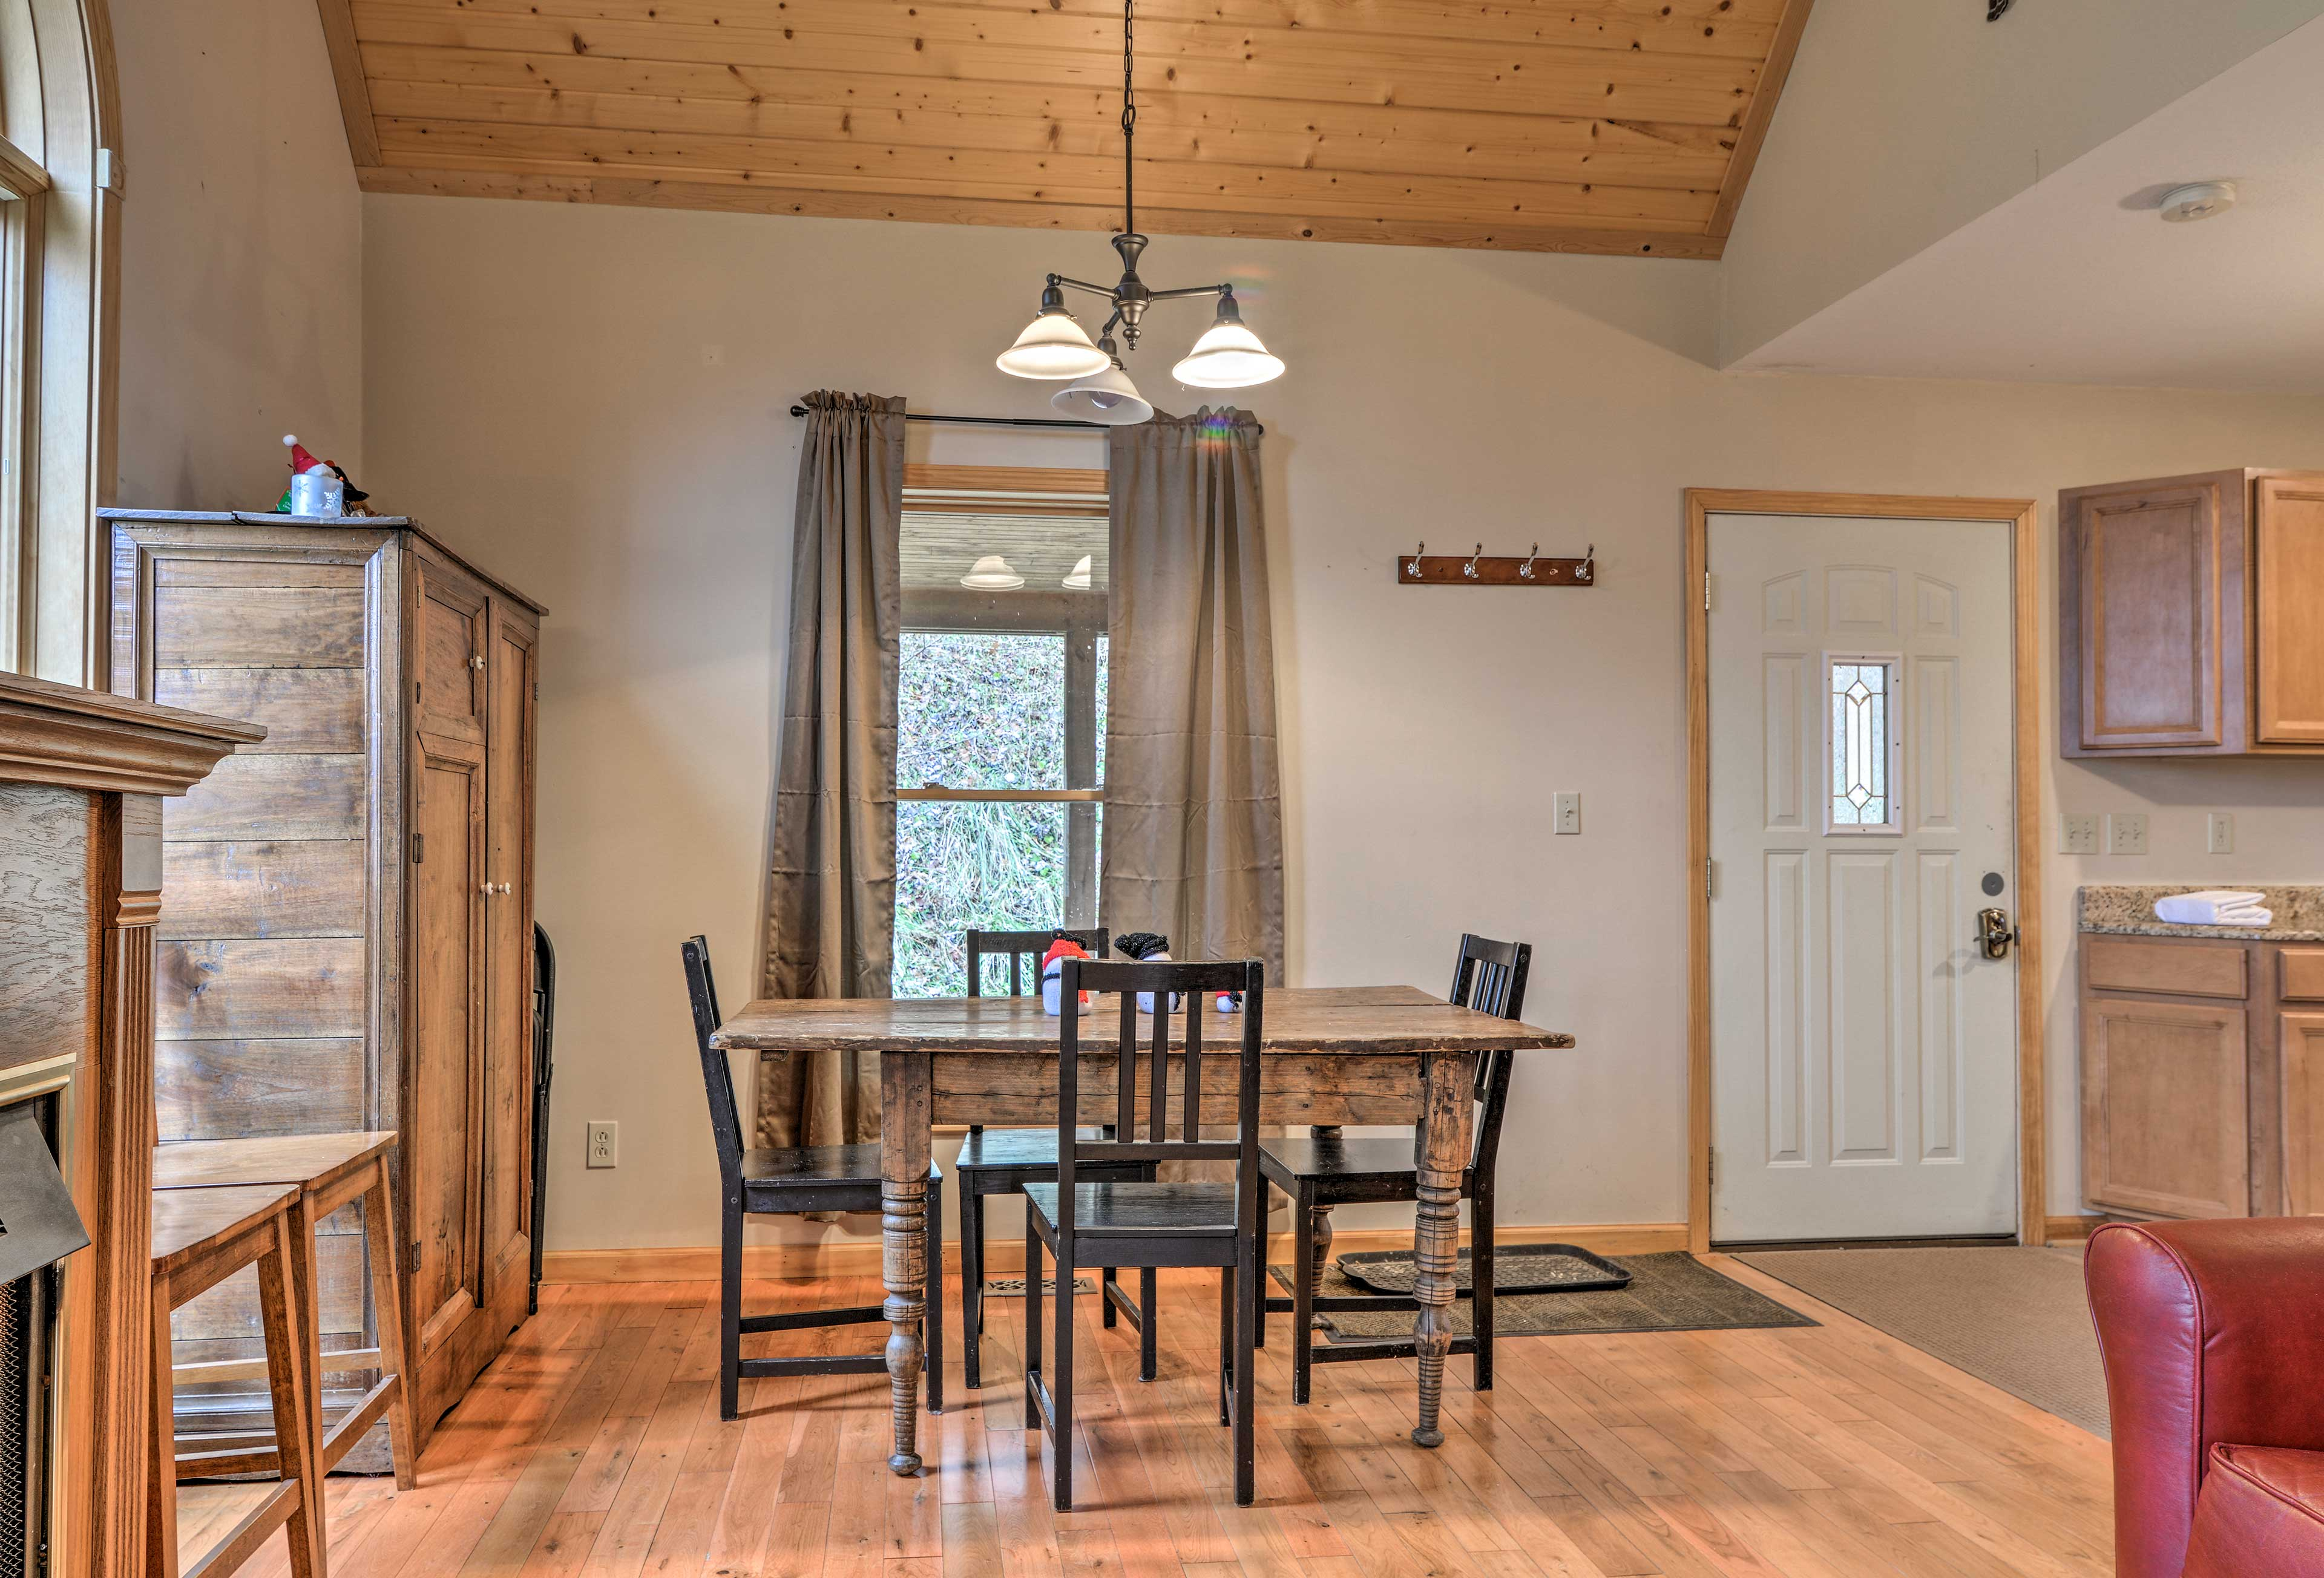 Dine in an abundance of natural light with windows framing the 4-seat table.